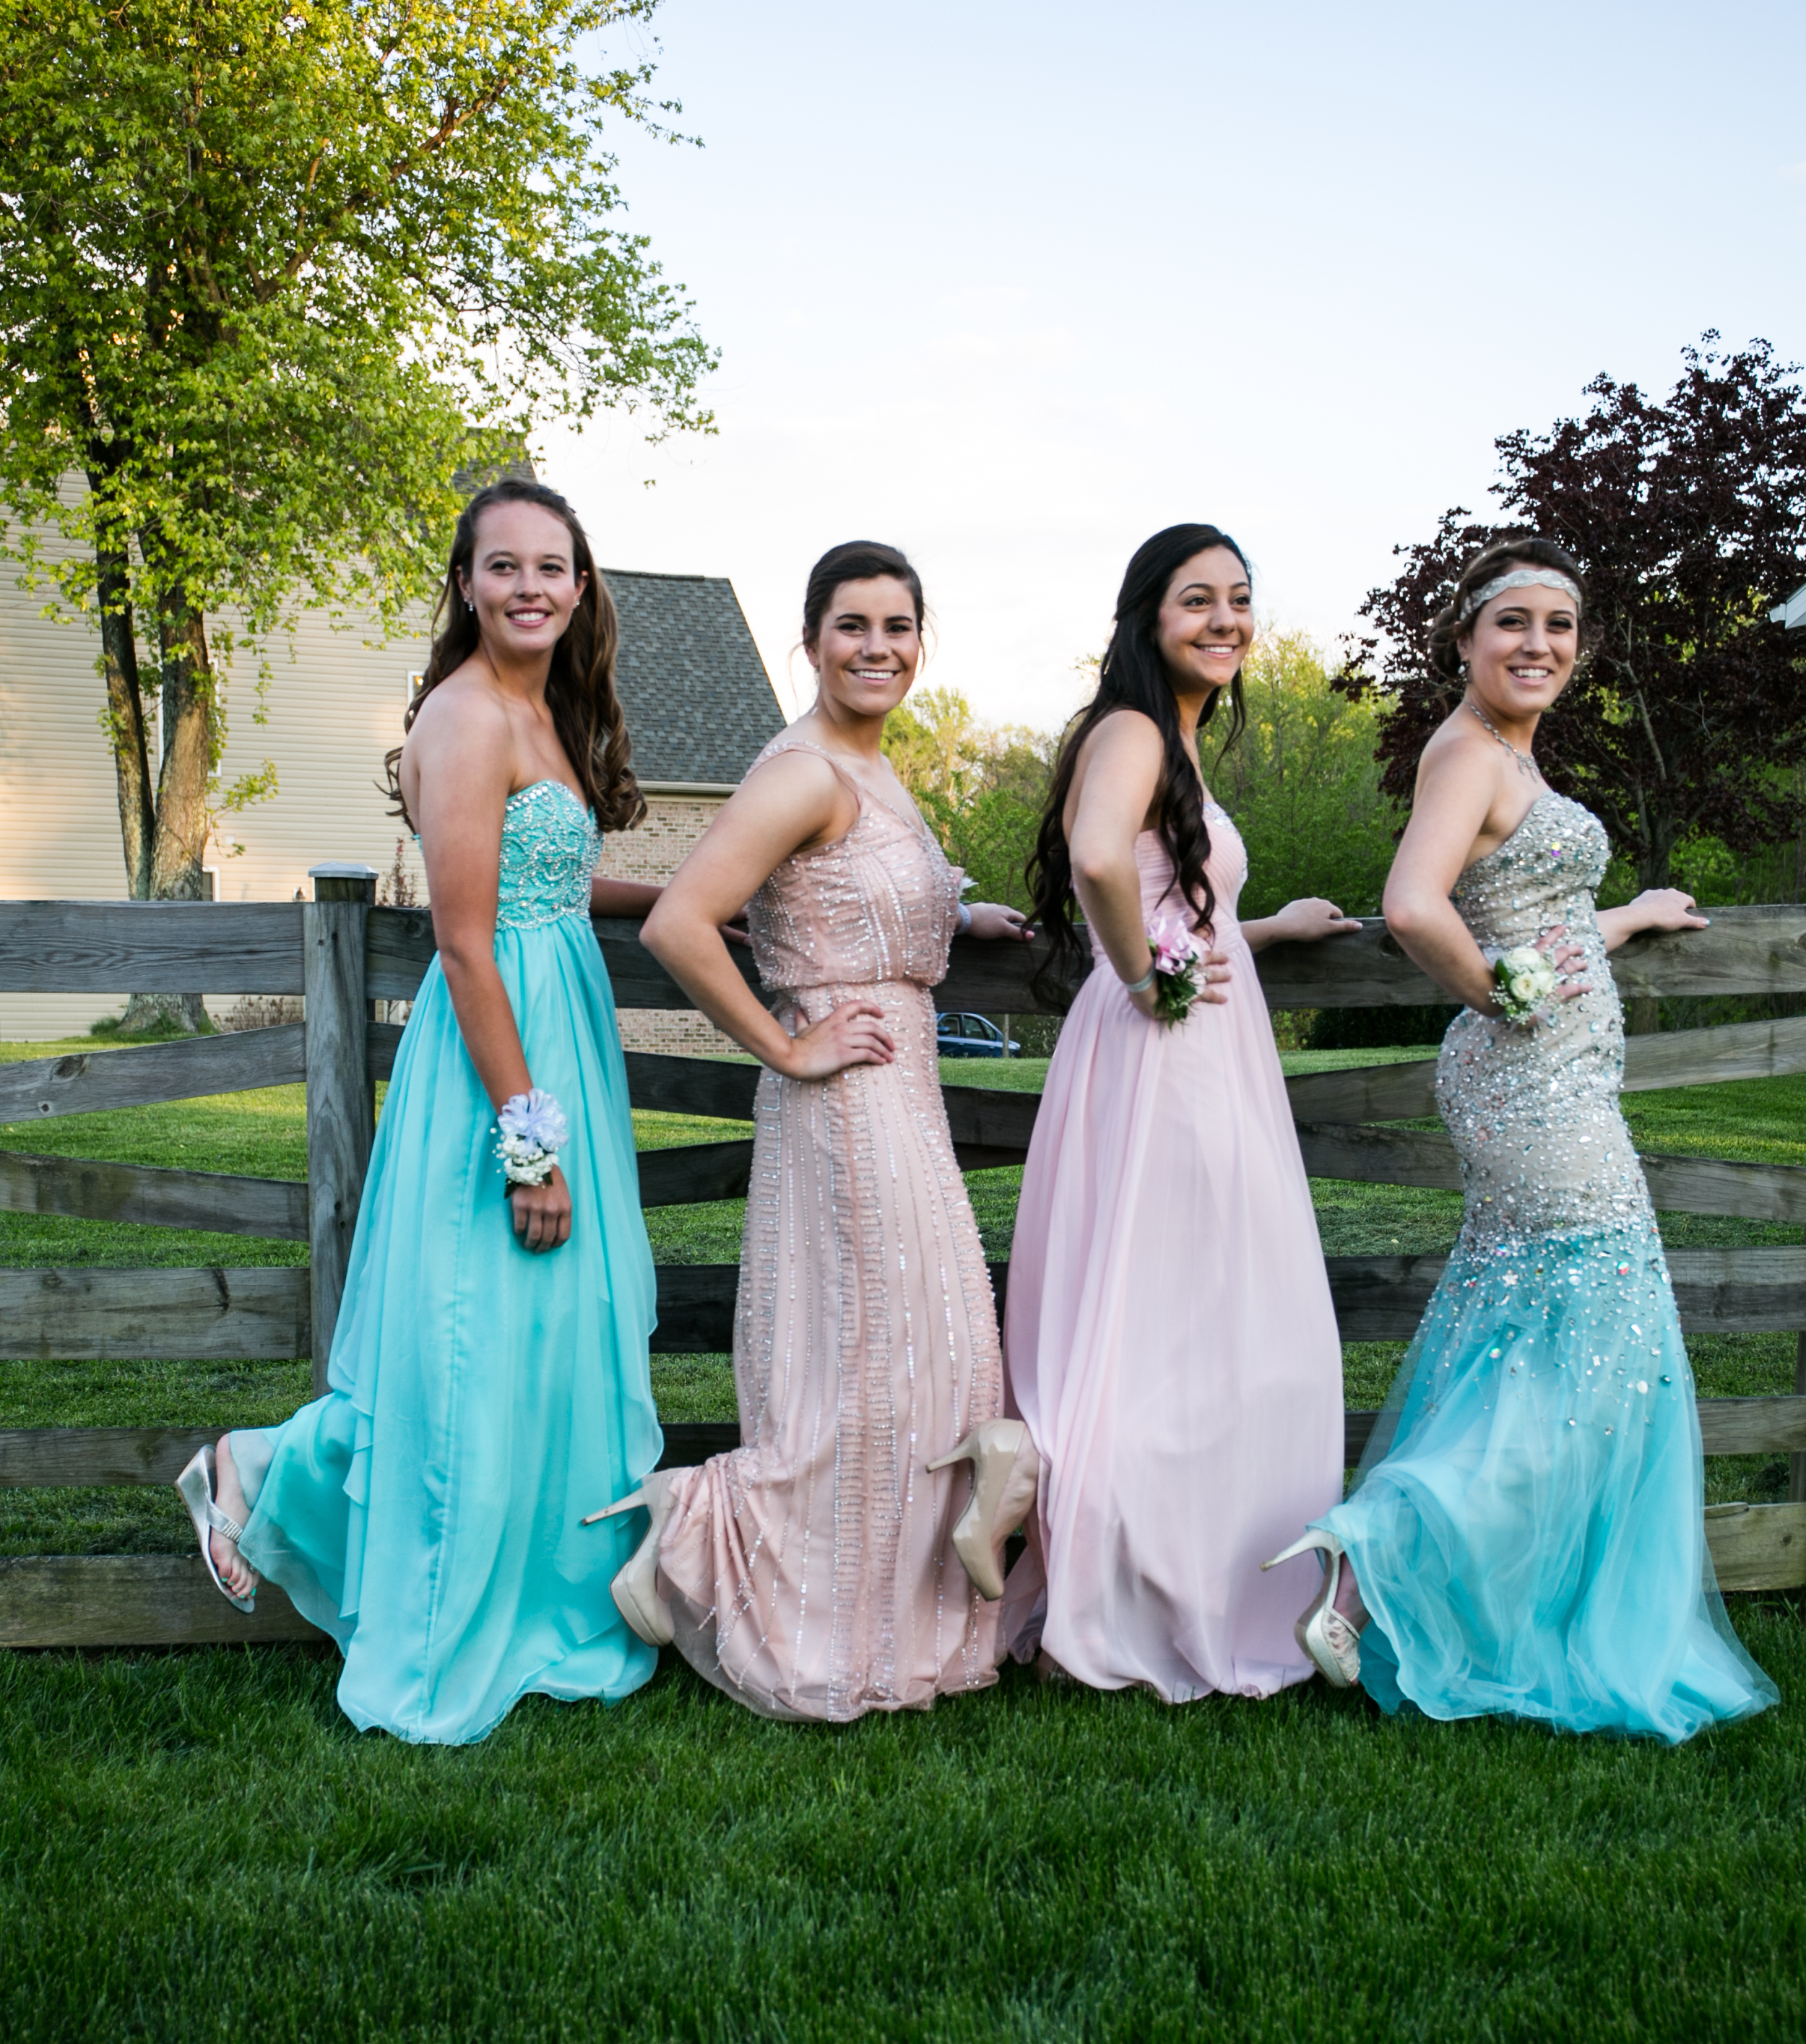 Mount-De-Sales-Pre-Prom-May-2014-116.jpg